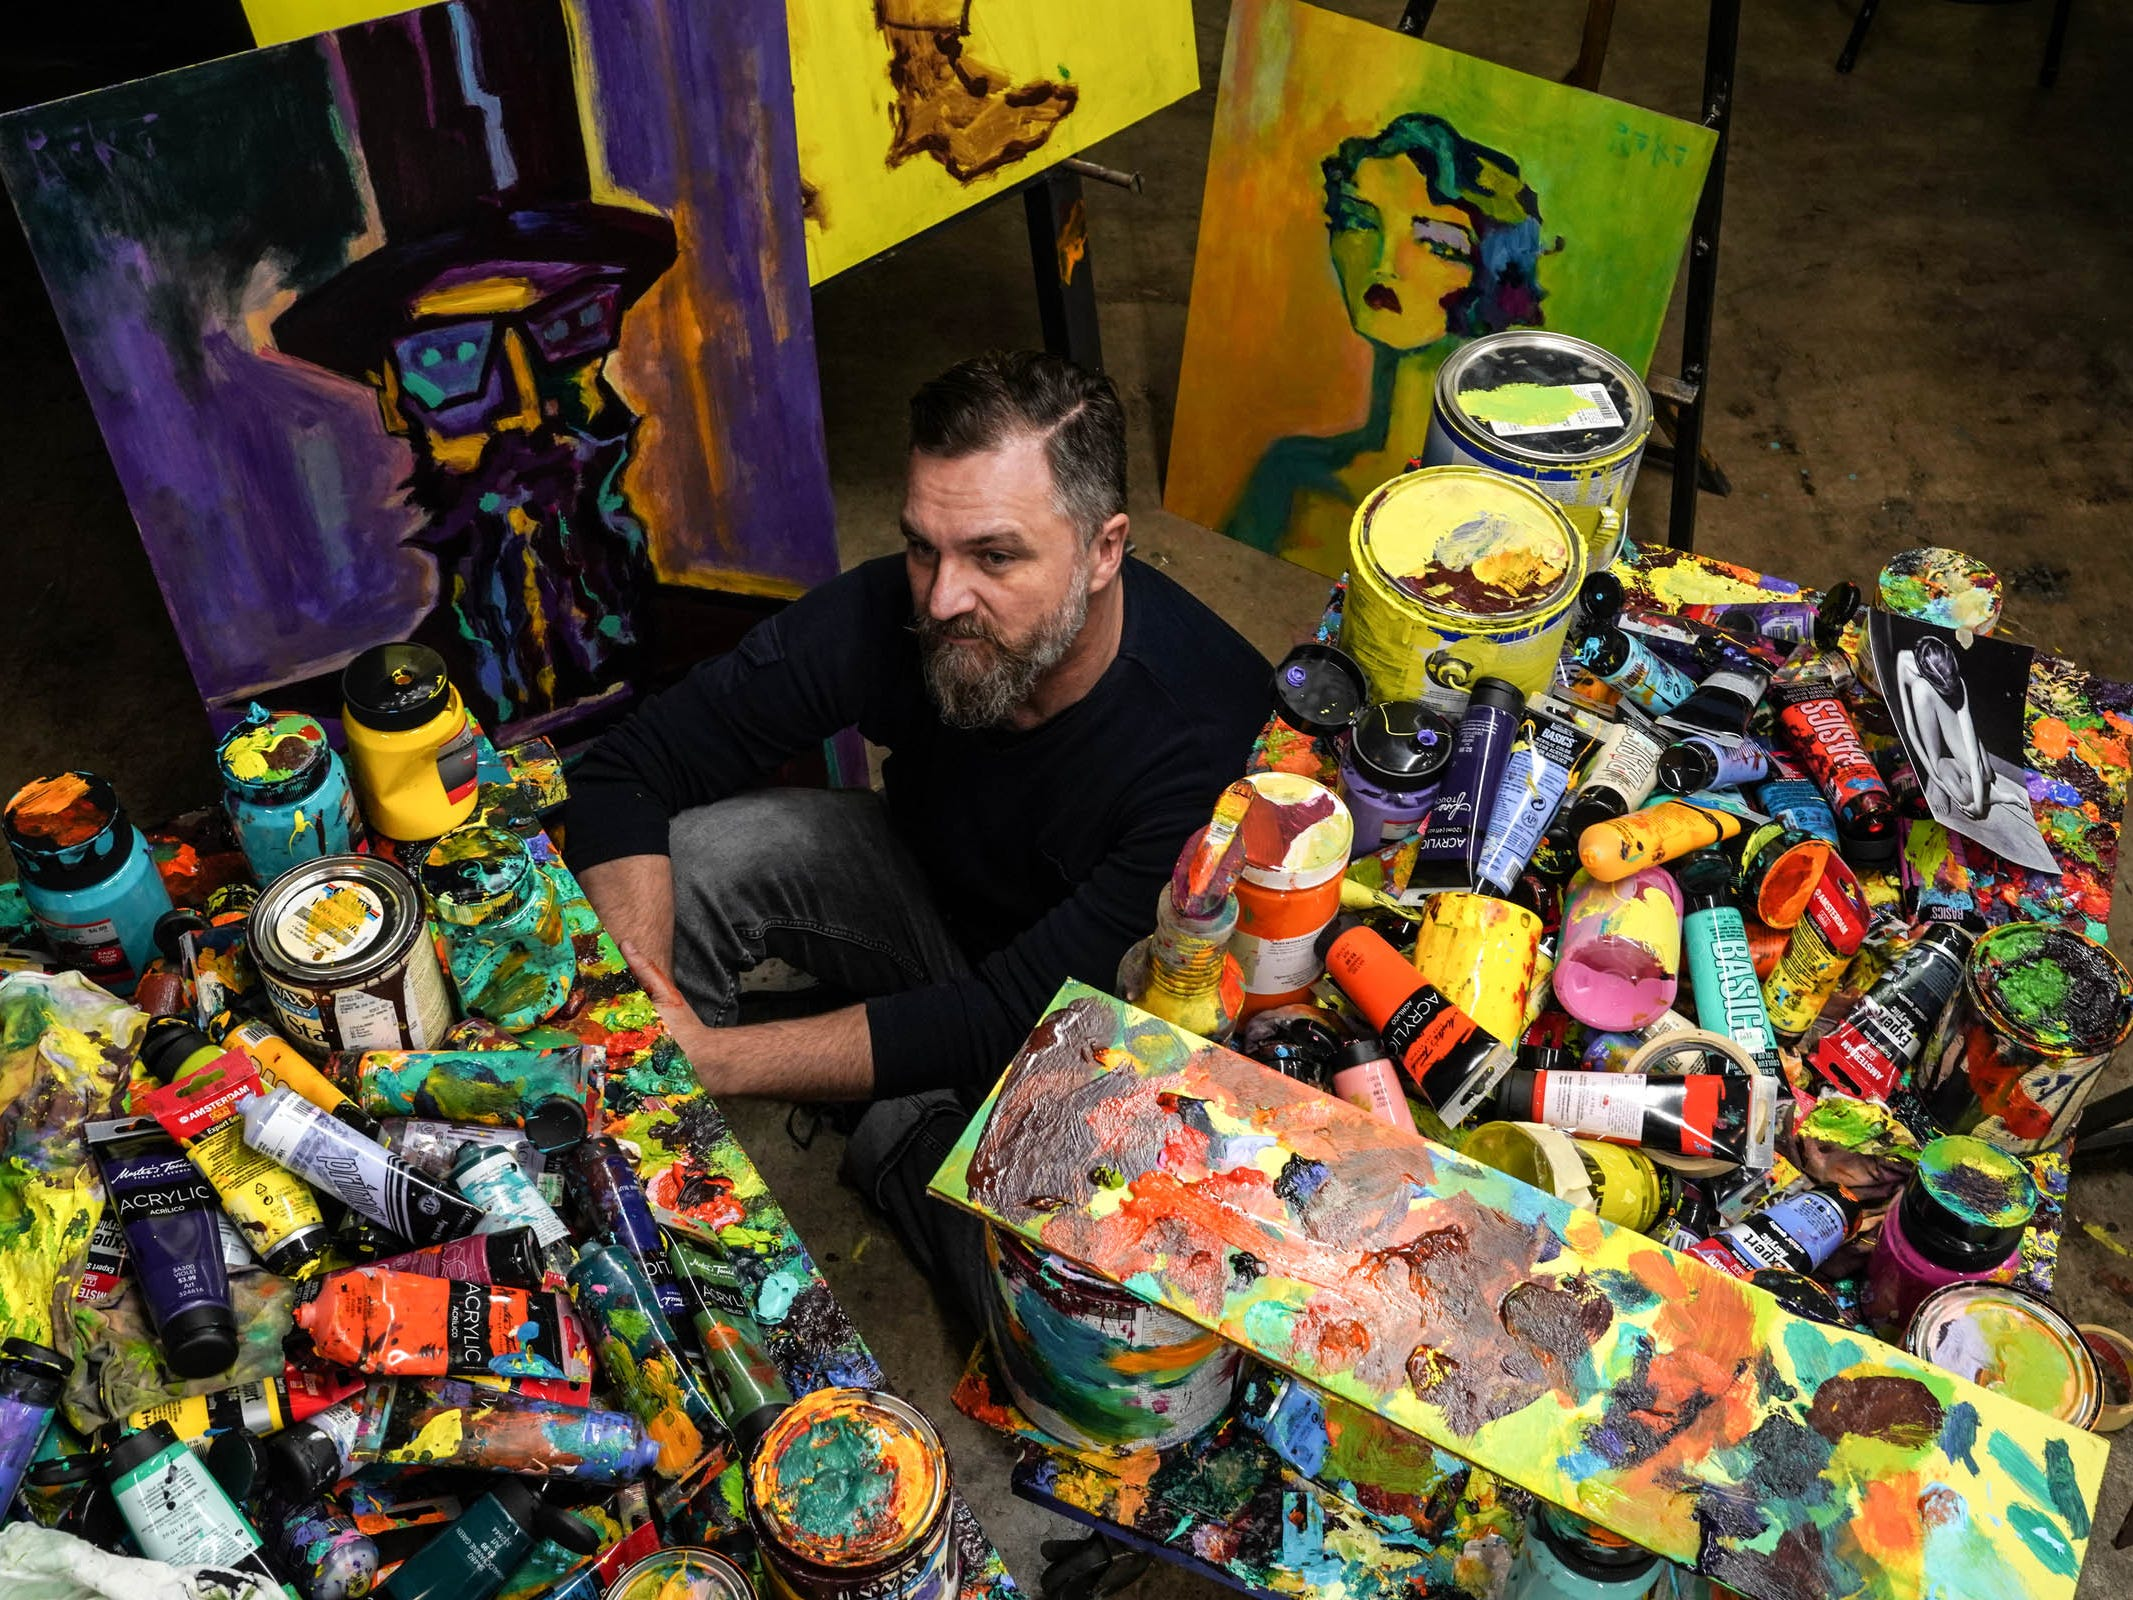 Artist Tony Roko with the tools of his trade at his studio in Plymouth on Friday, October 12, 2018. Roko got his start on the Ford Assembly line and has painted murals for Ford factories and will have a piece featured in Ford's renovation of the former Michigan Central Station in Detroit's Corktown neighborhood.